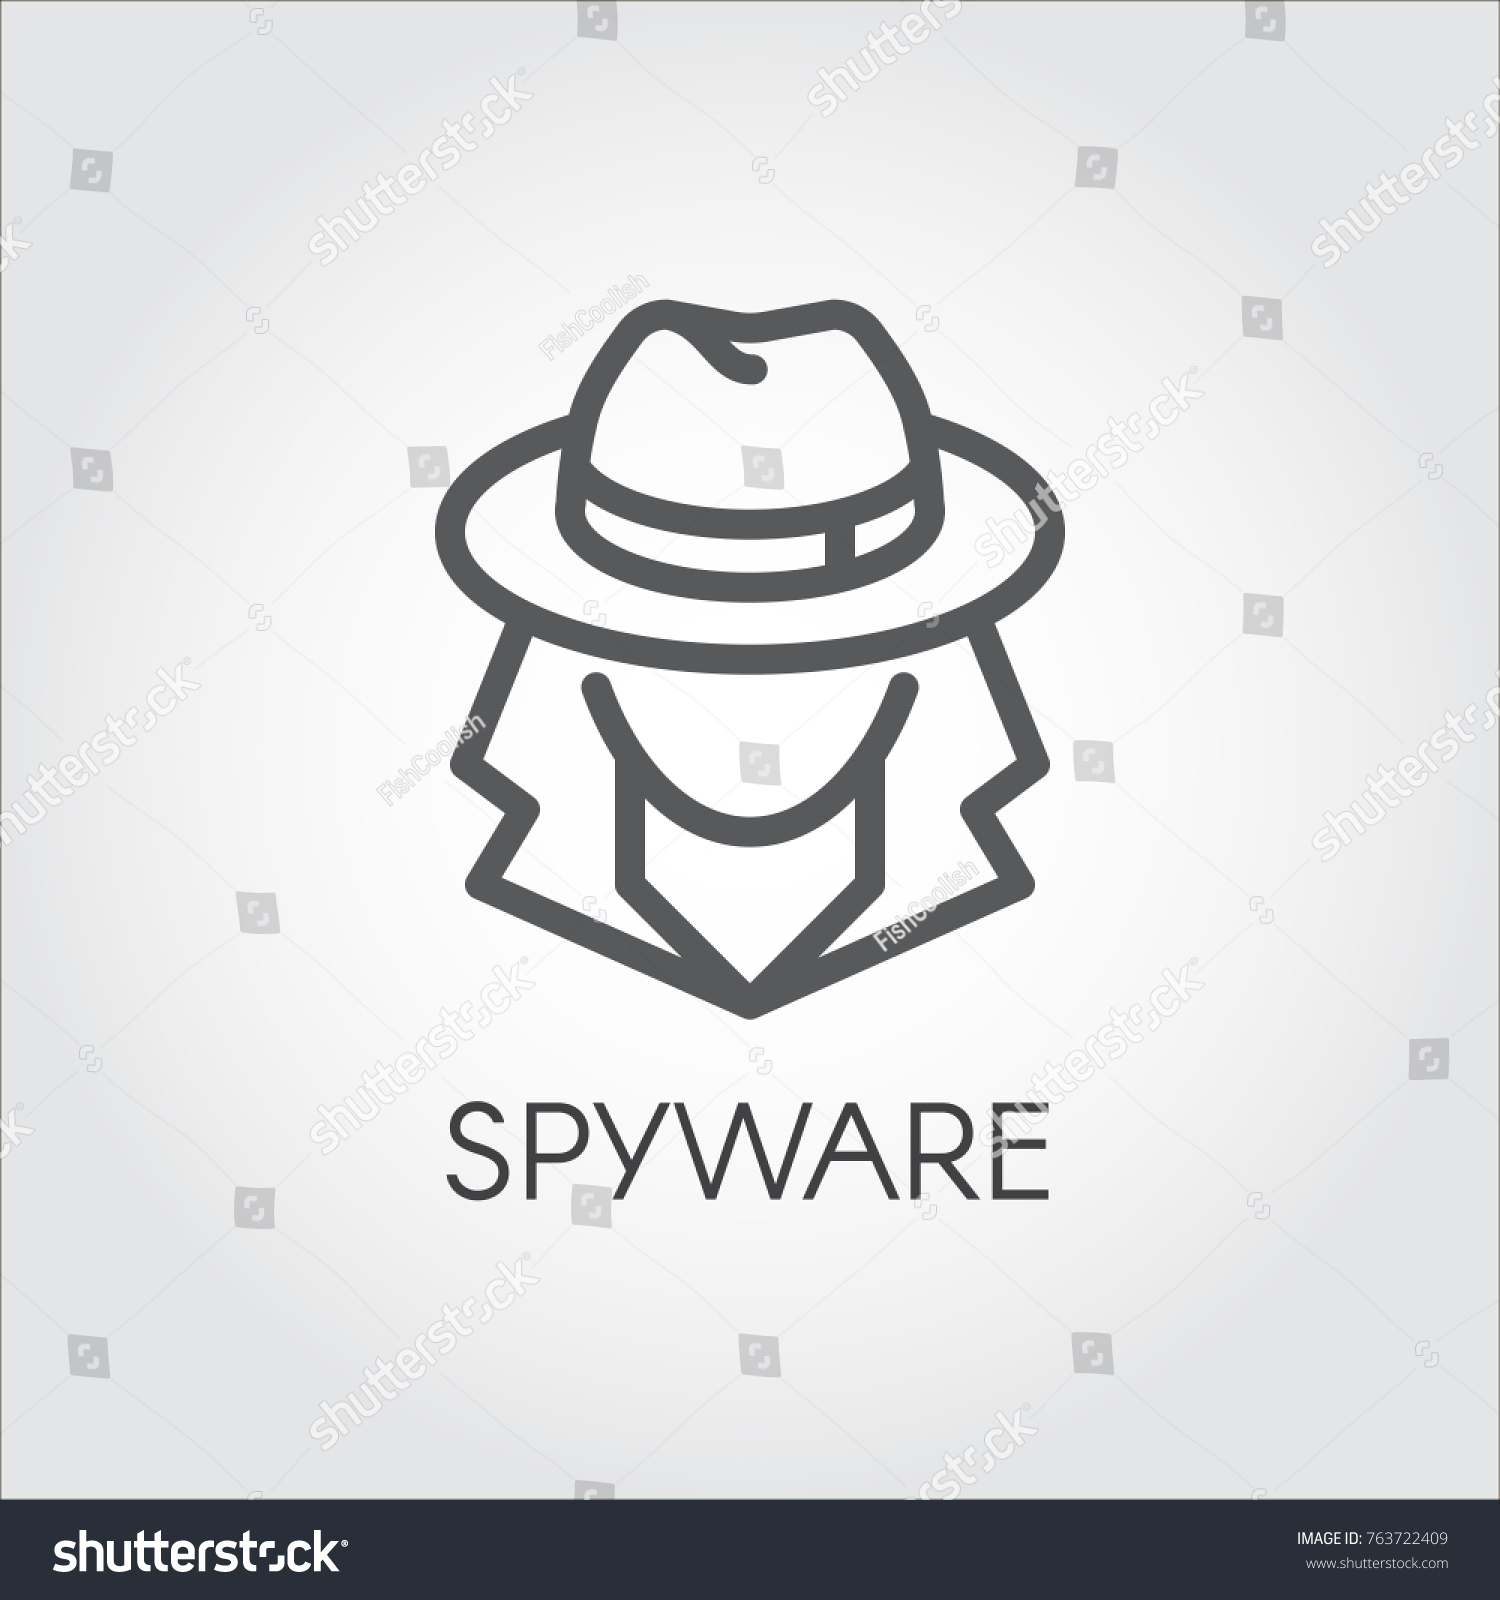 Spy Stock Quote Spyware Icon Outline Design Abstract Figure Stock Vector 763722409